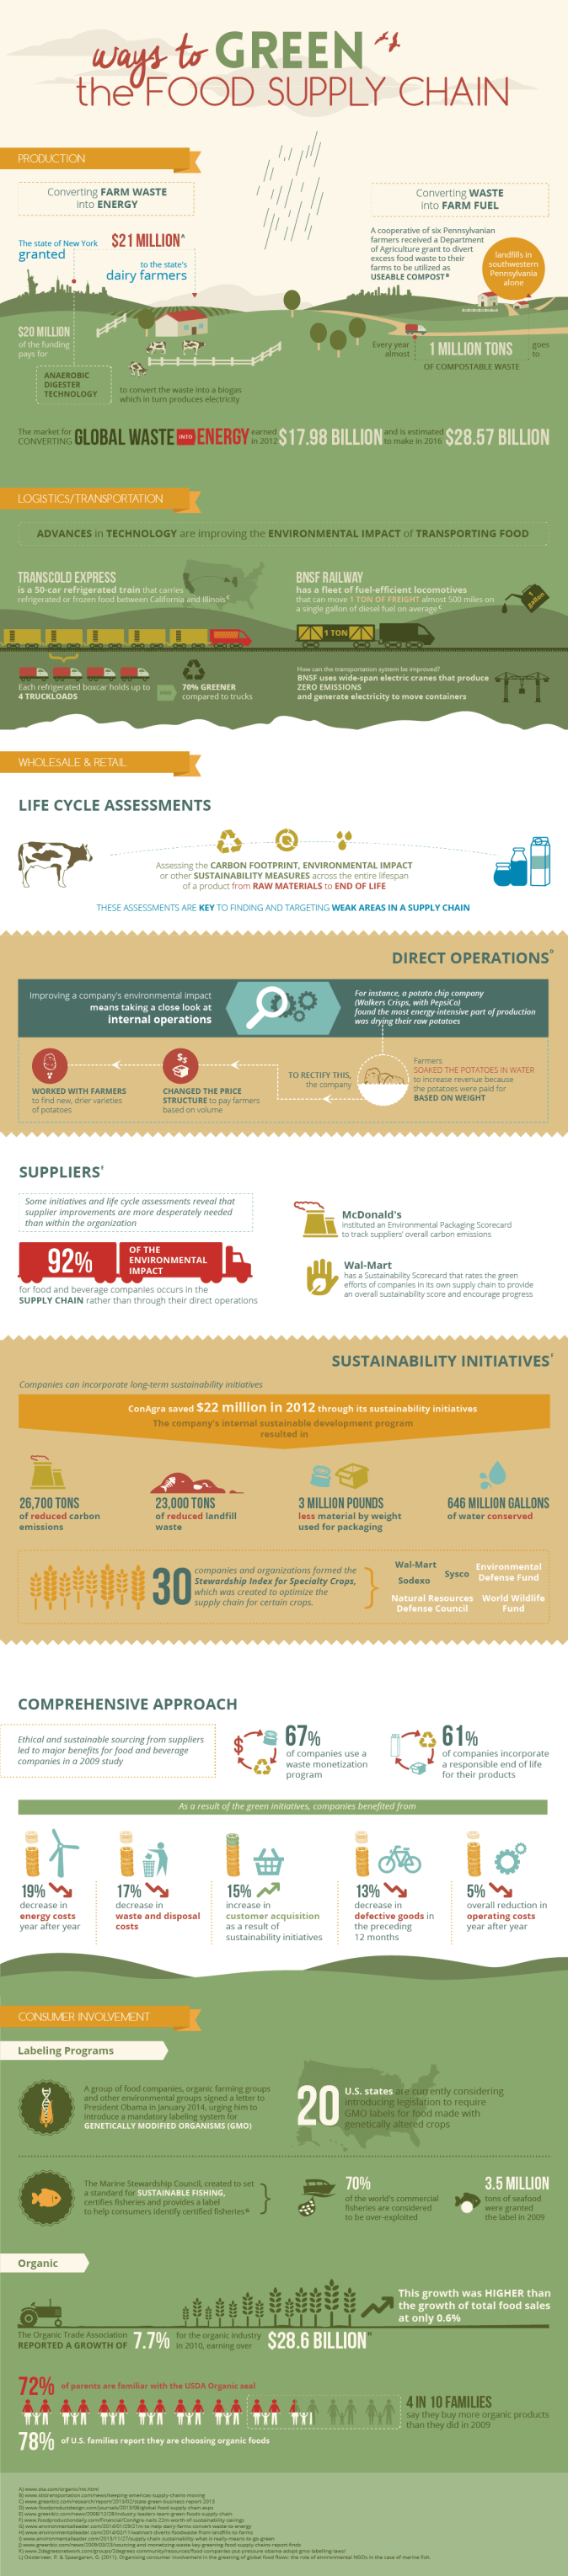 Sustainable food cycle on food. Chart on sustainable food and life cycles